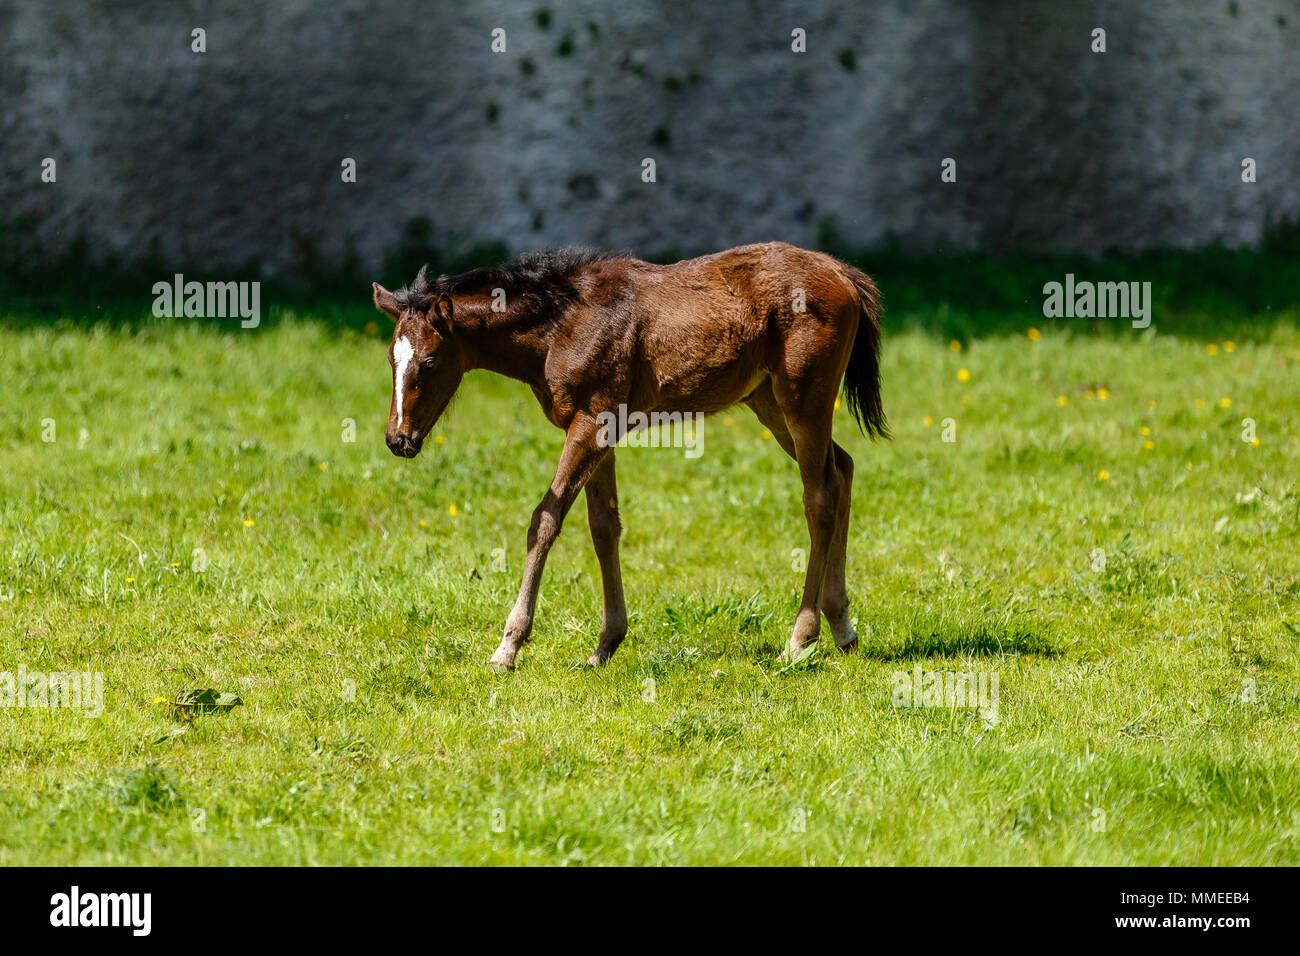 Thoroughbred foal grazing in a pasture at the Palmerstown House Estate, County Kildare Ireland. - Stock Image